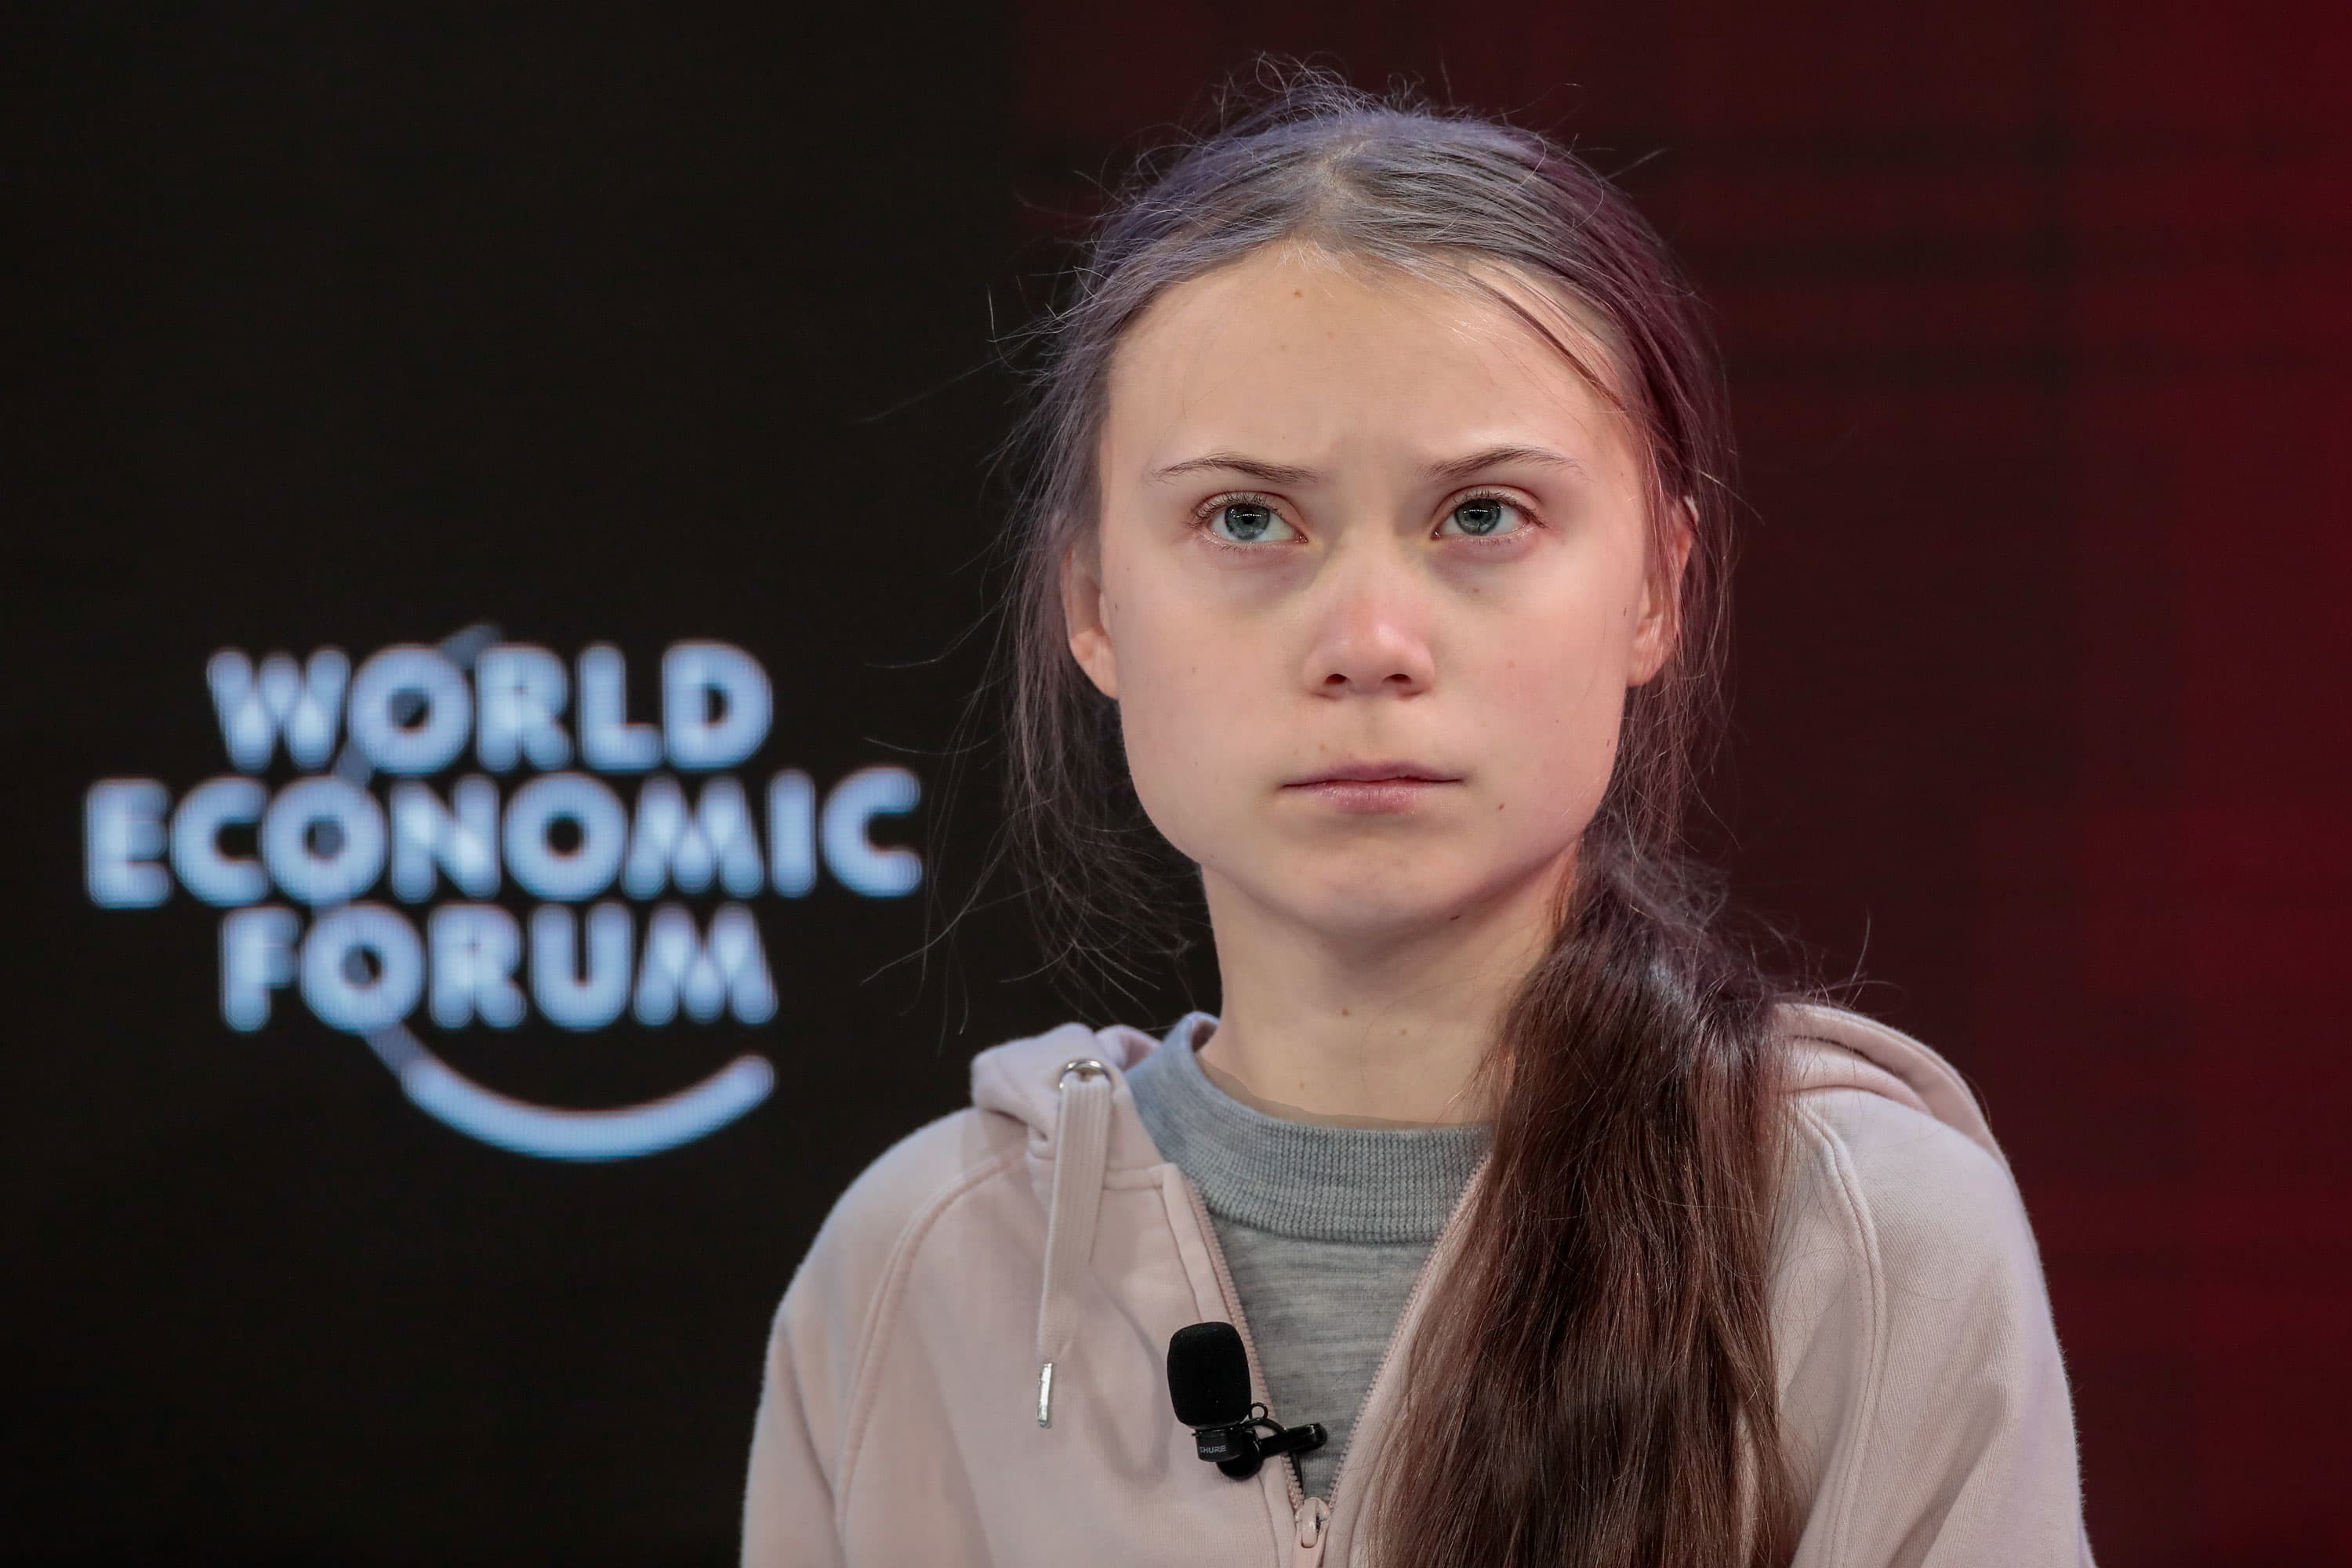 'Our house is still on fire,' Greta Thunberg tells Davos